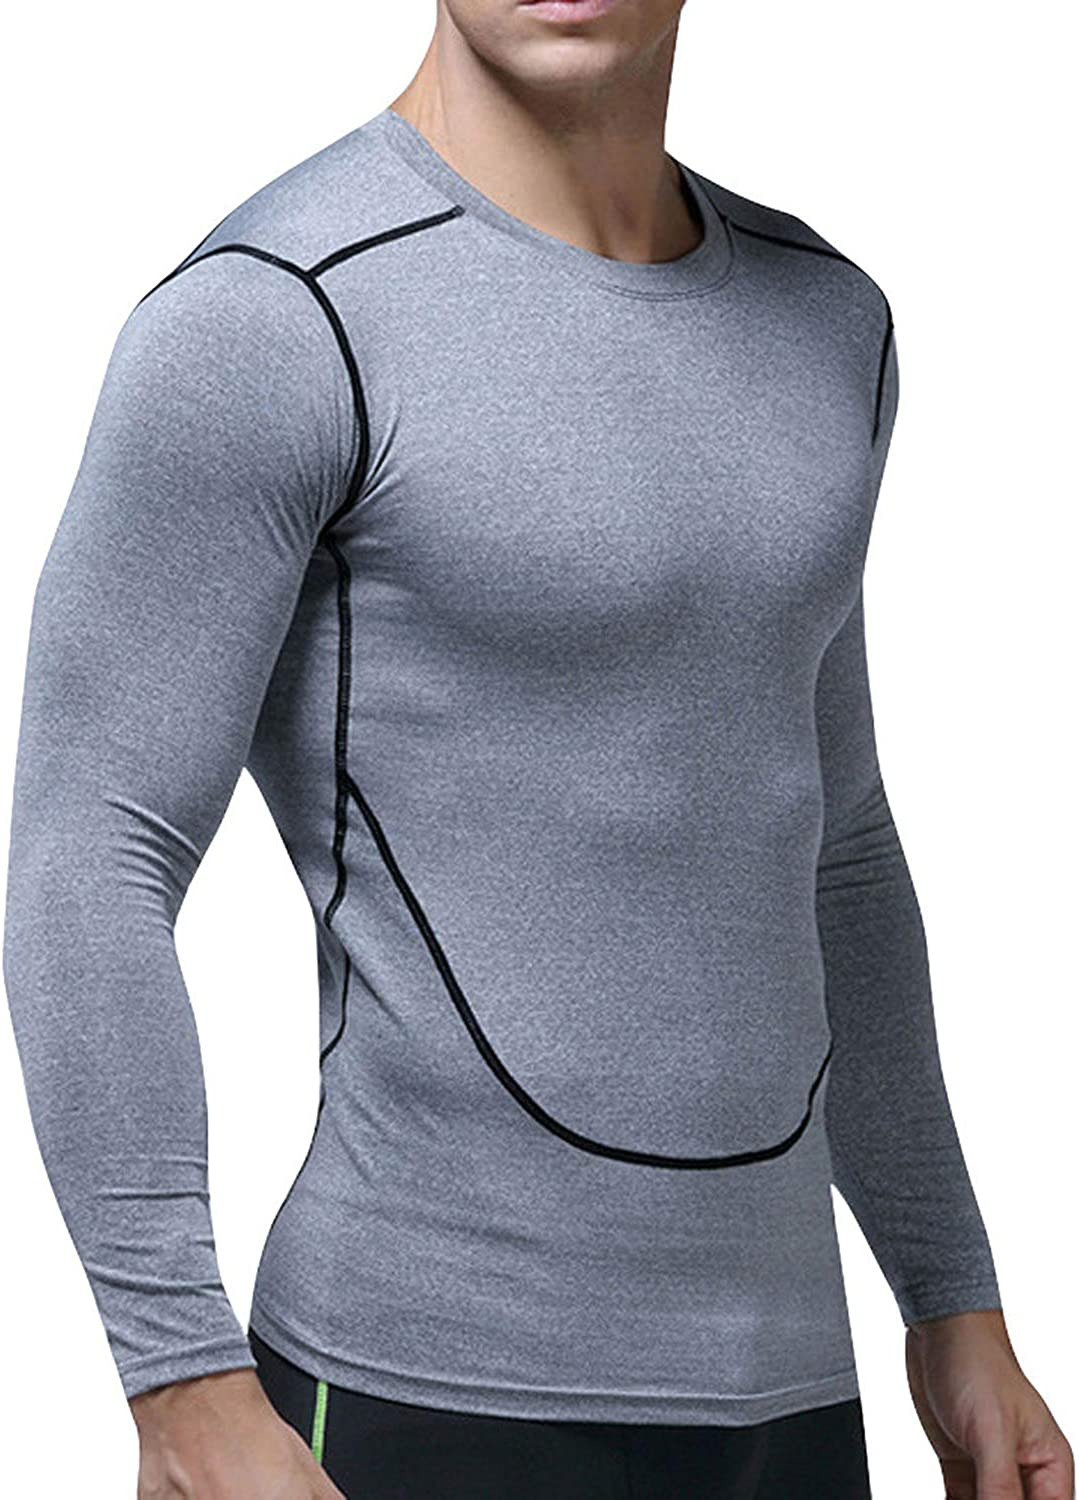 Fast Dry Sports Tight T Shirts Casual Running Mens Long Sleeved Tops Tees